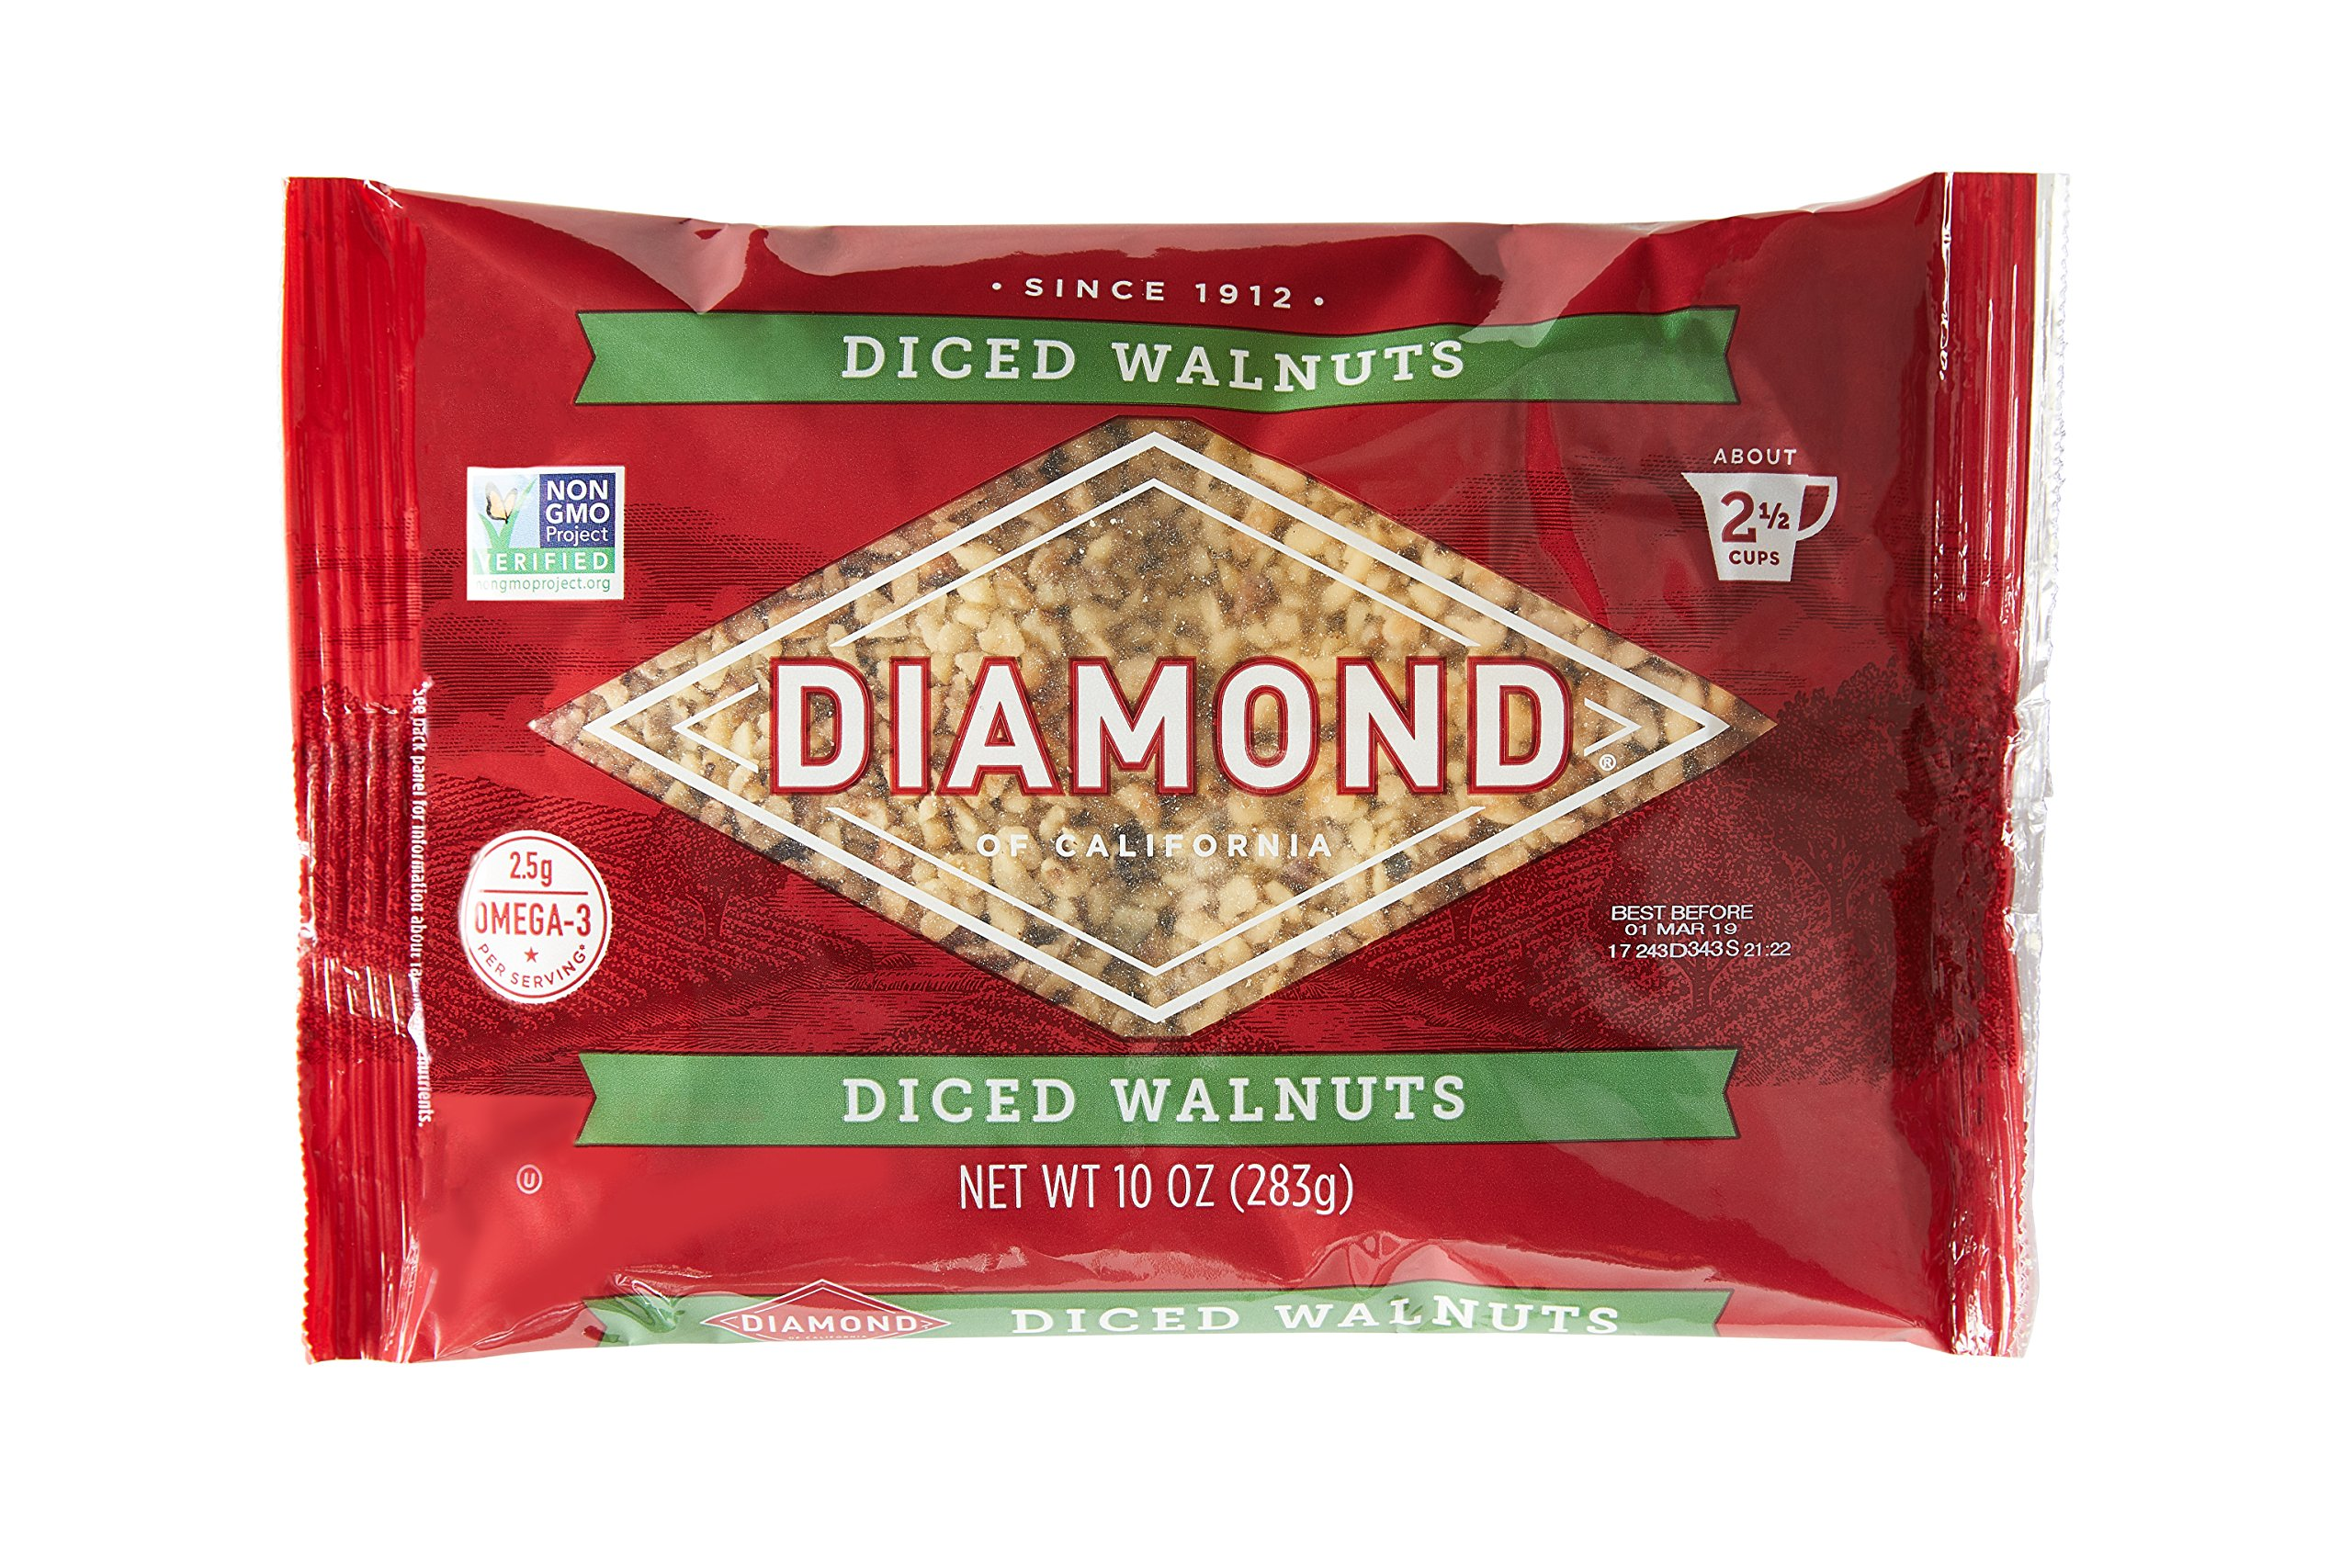 Diamond of California, Finely Diced Walnuts, Non GMO, No Added Salt, 10 oz. (Pack of 6)